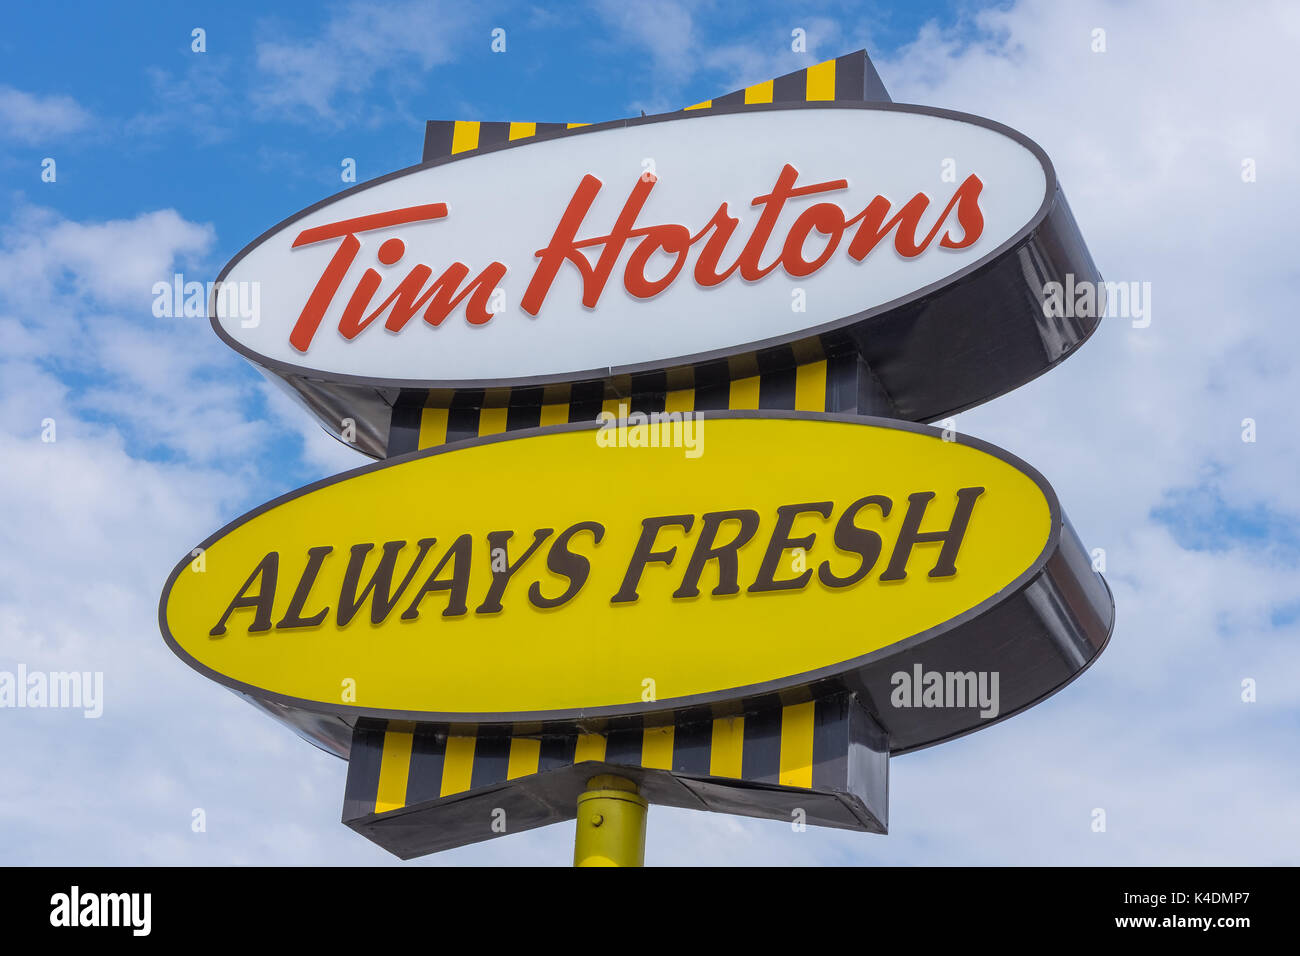 Tim Hortons is a Canadian multinational restaurant coffee shop chain best known for its coffee and doughnuts. - Stock Image